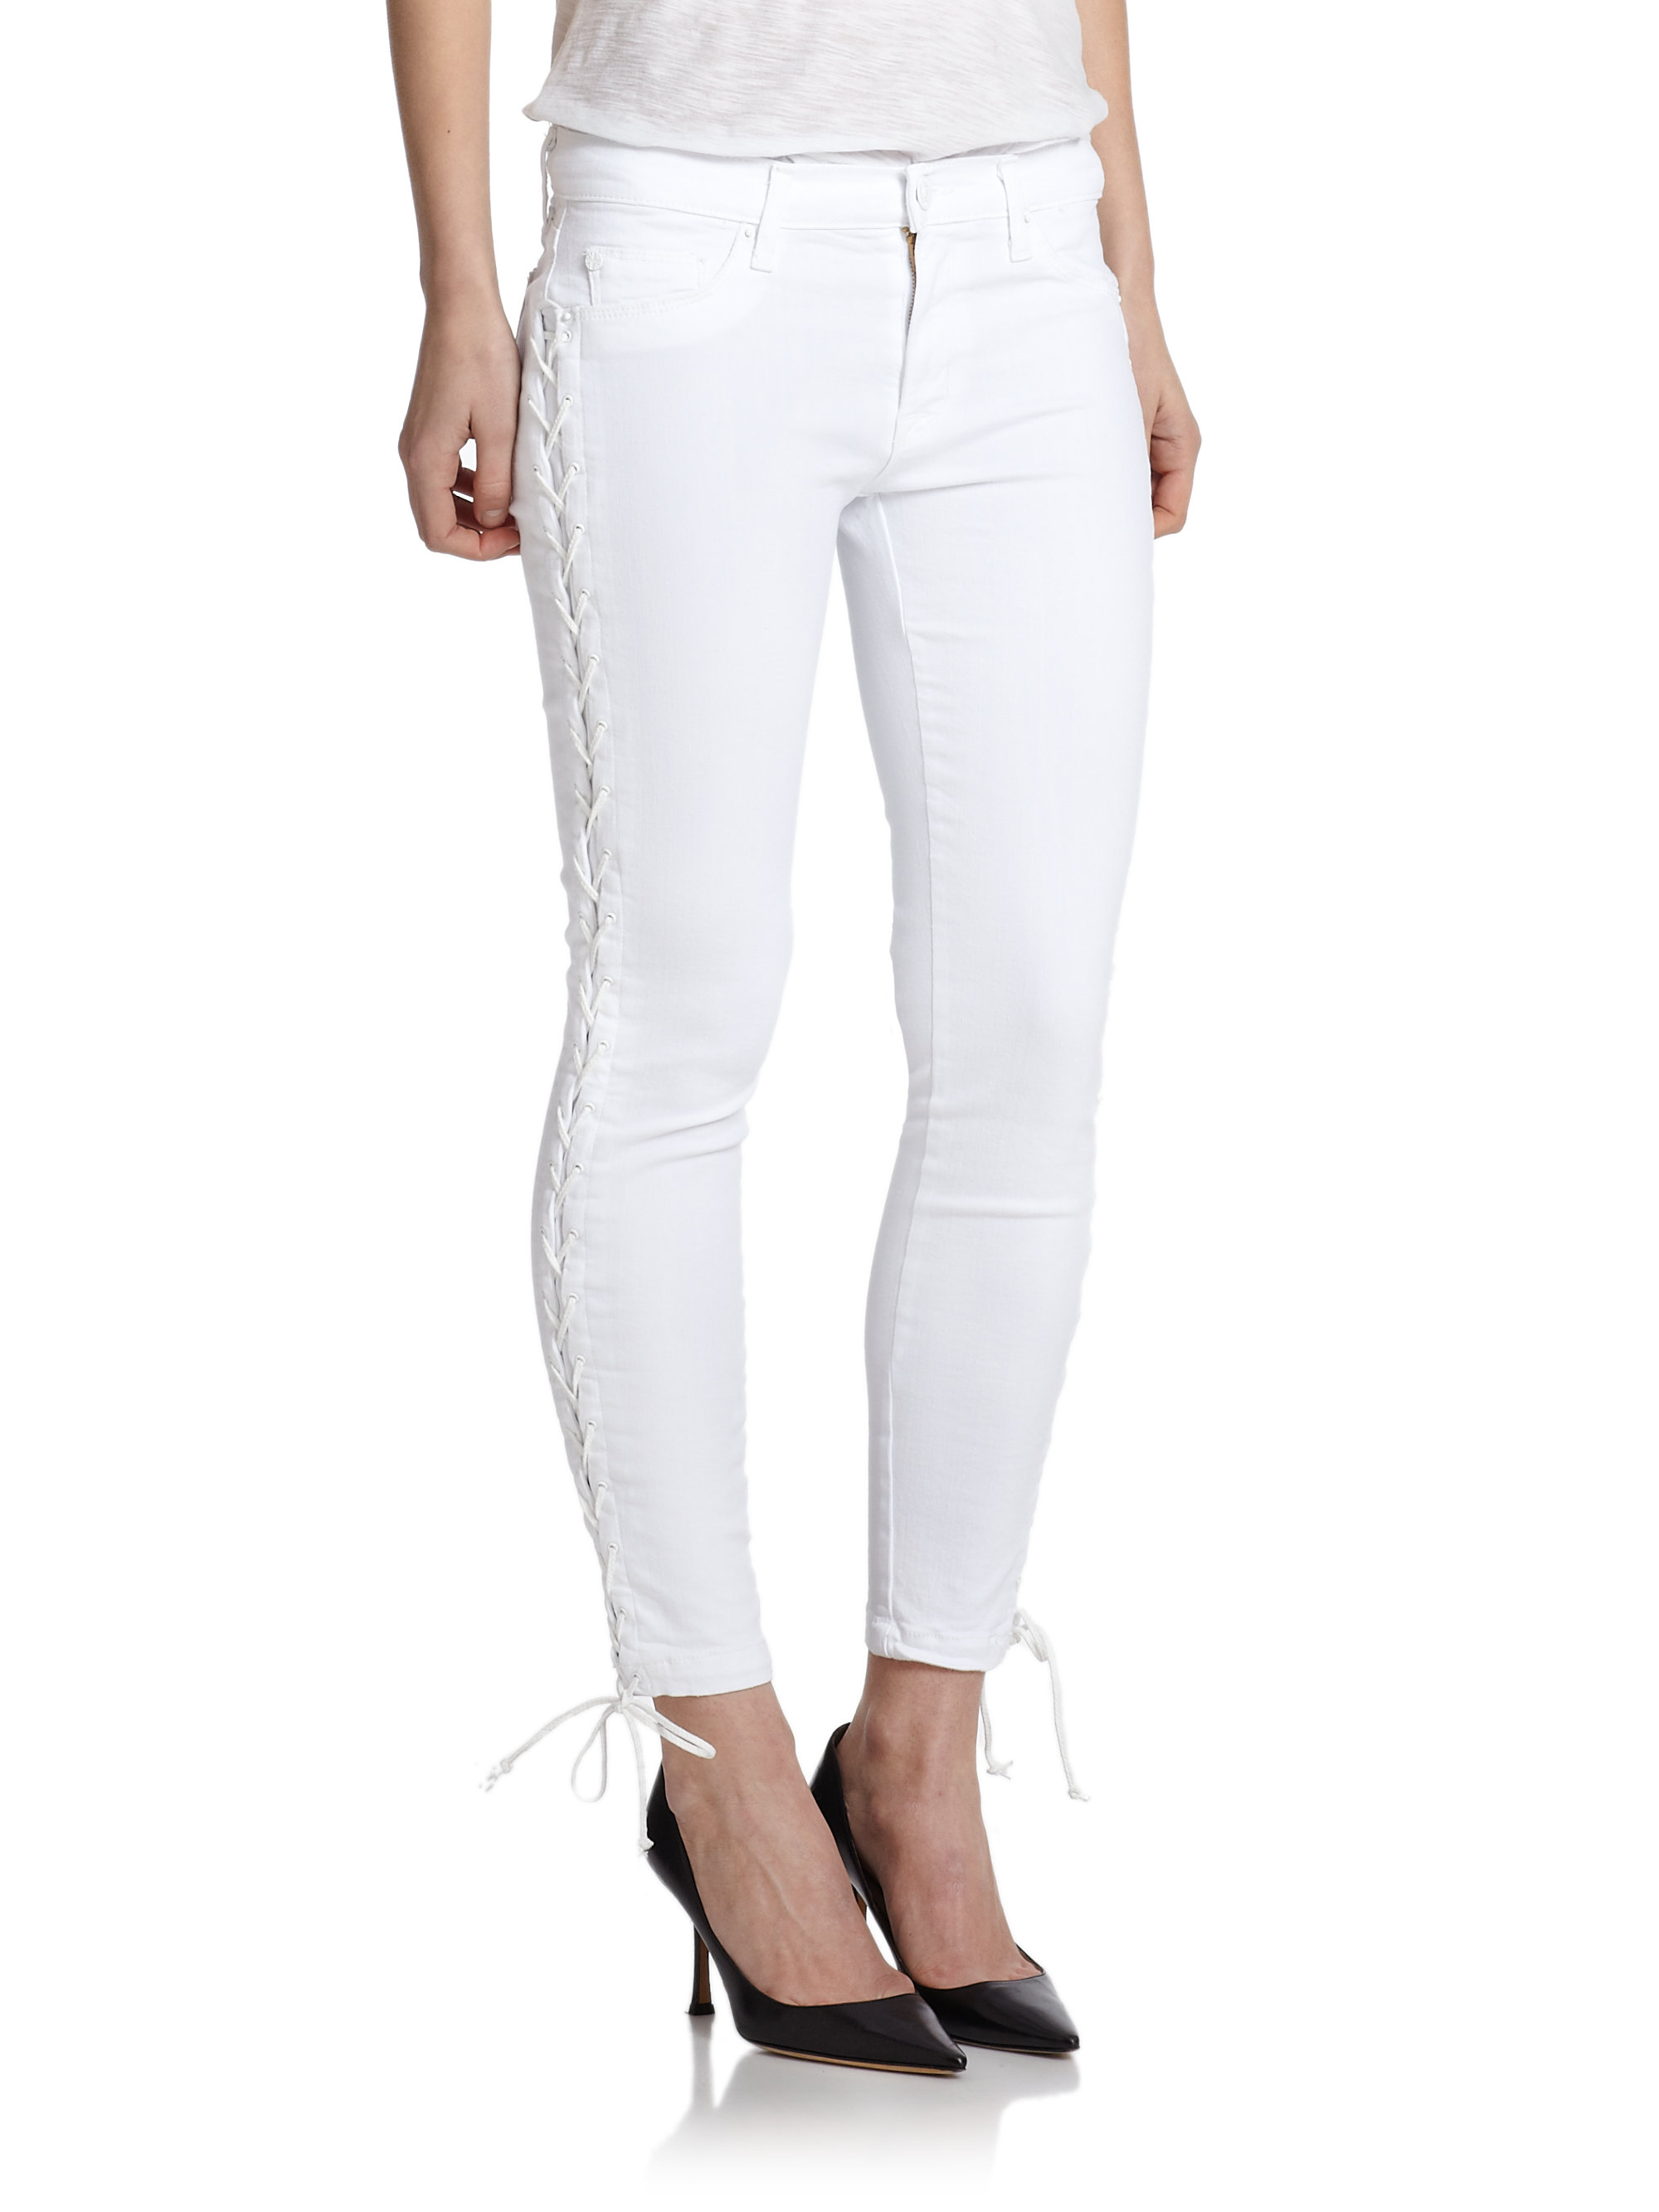 Hudson jeans Raven Lace-up Cropped Super Skinny Jeans in White | Lyst